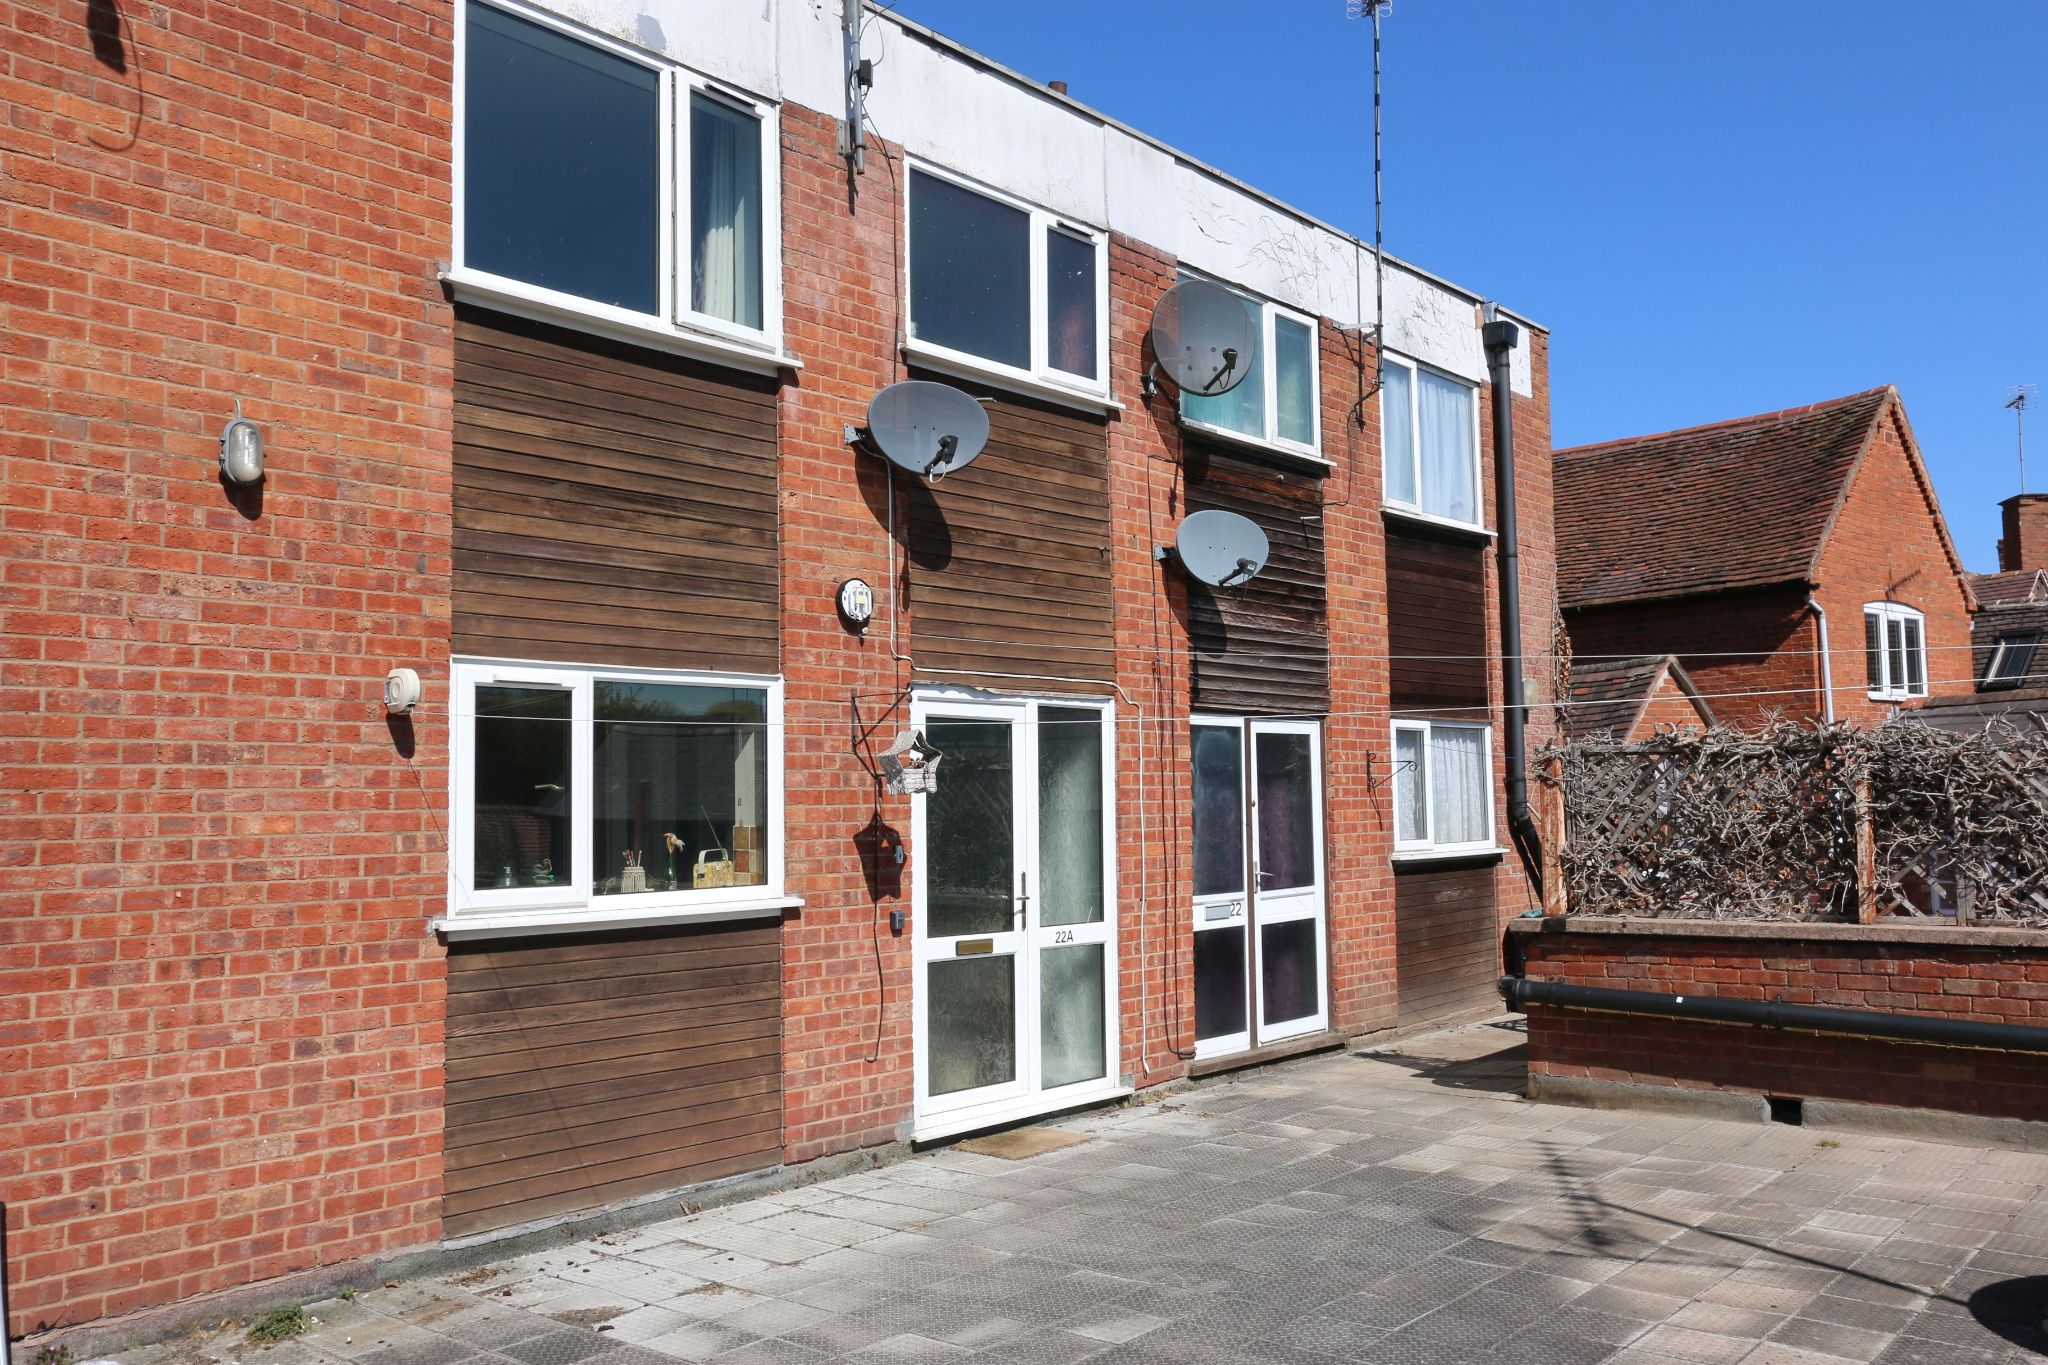 3 bedroom duplex flat/apartment For Sale Alcester - Property photograph